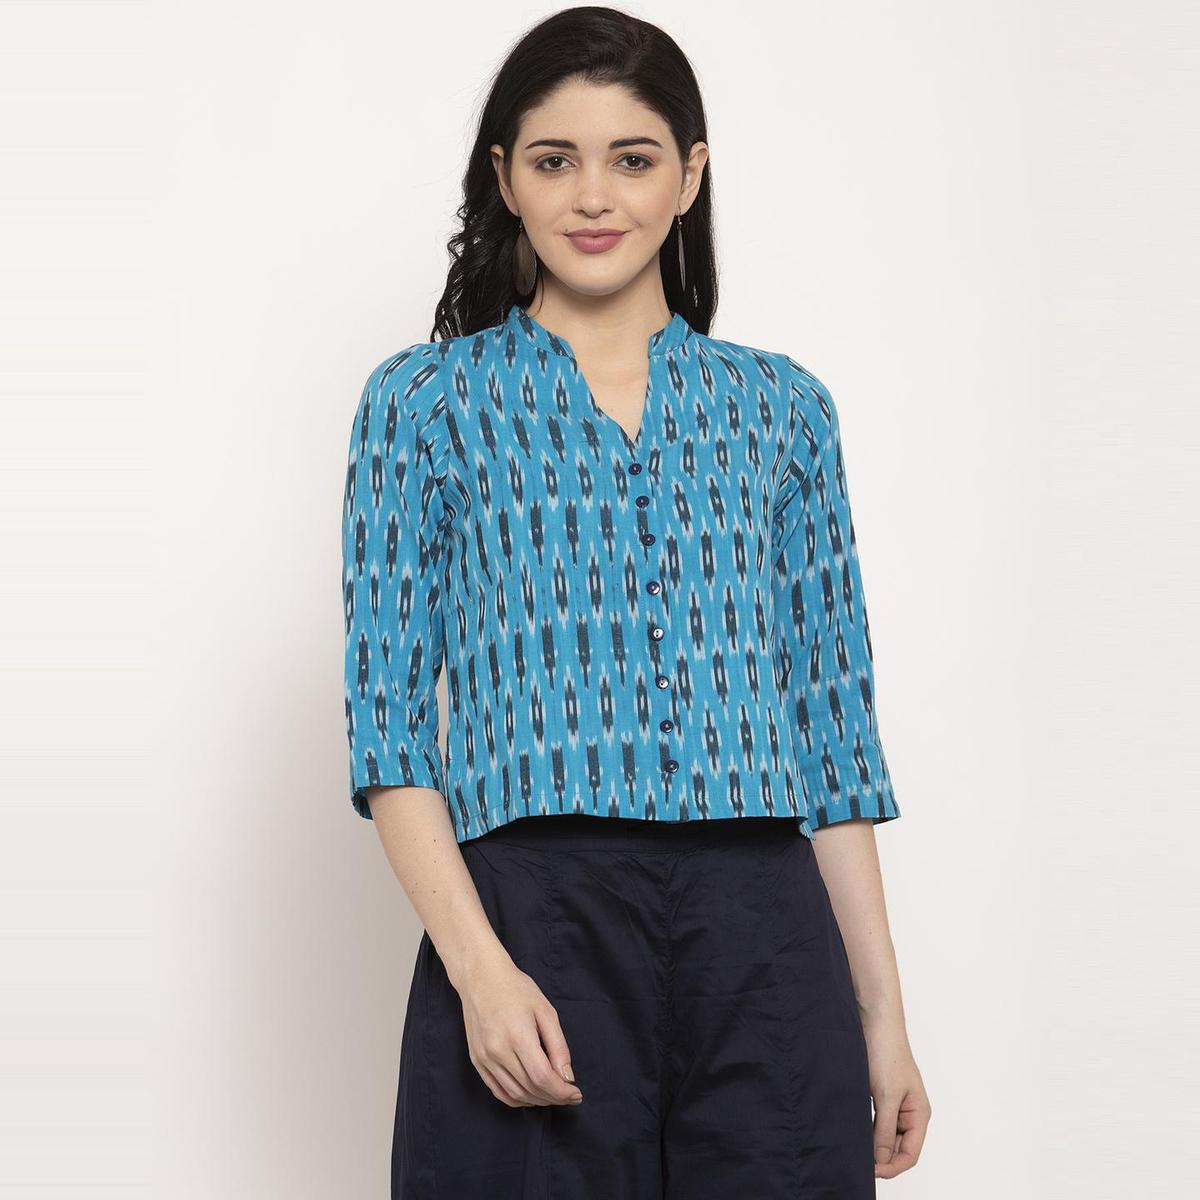 Ayaany - Blue Colored Casual Wear Printed Pure Cotton Top